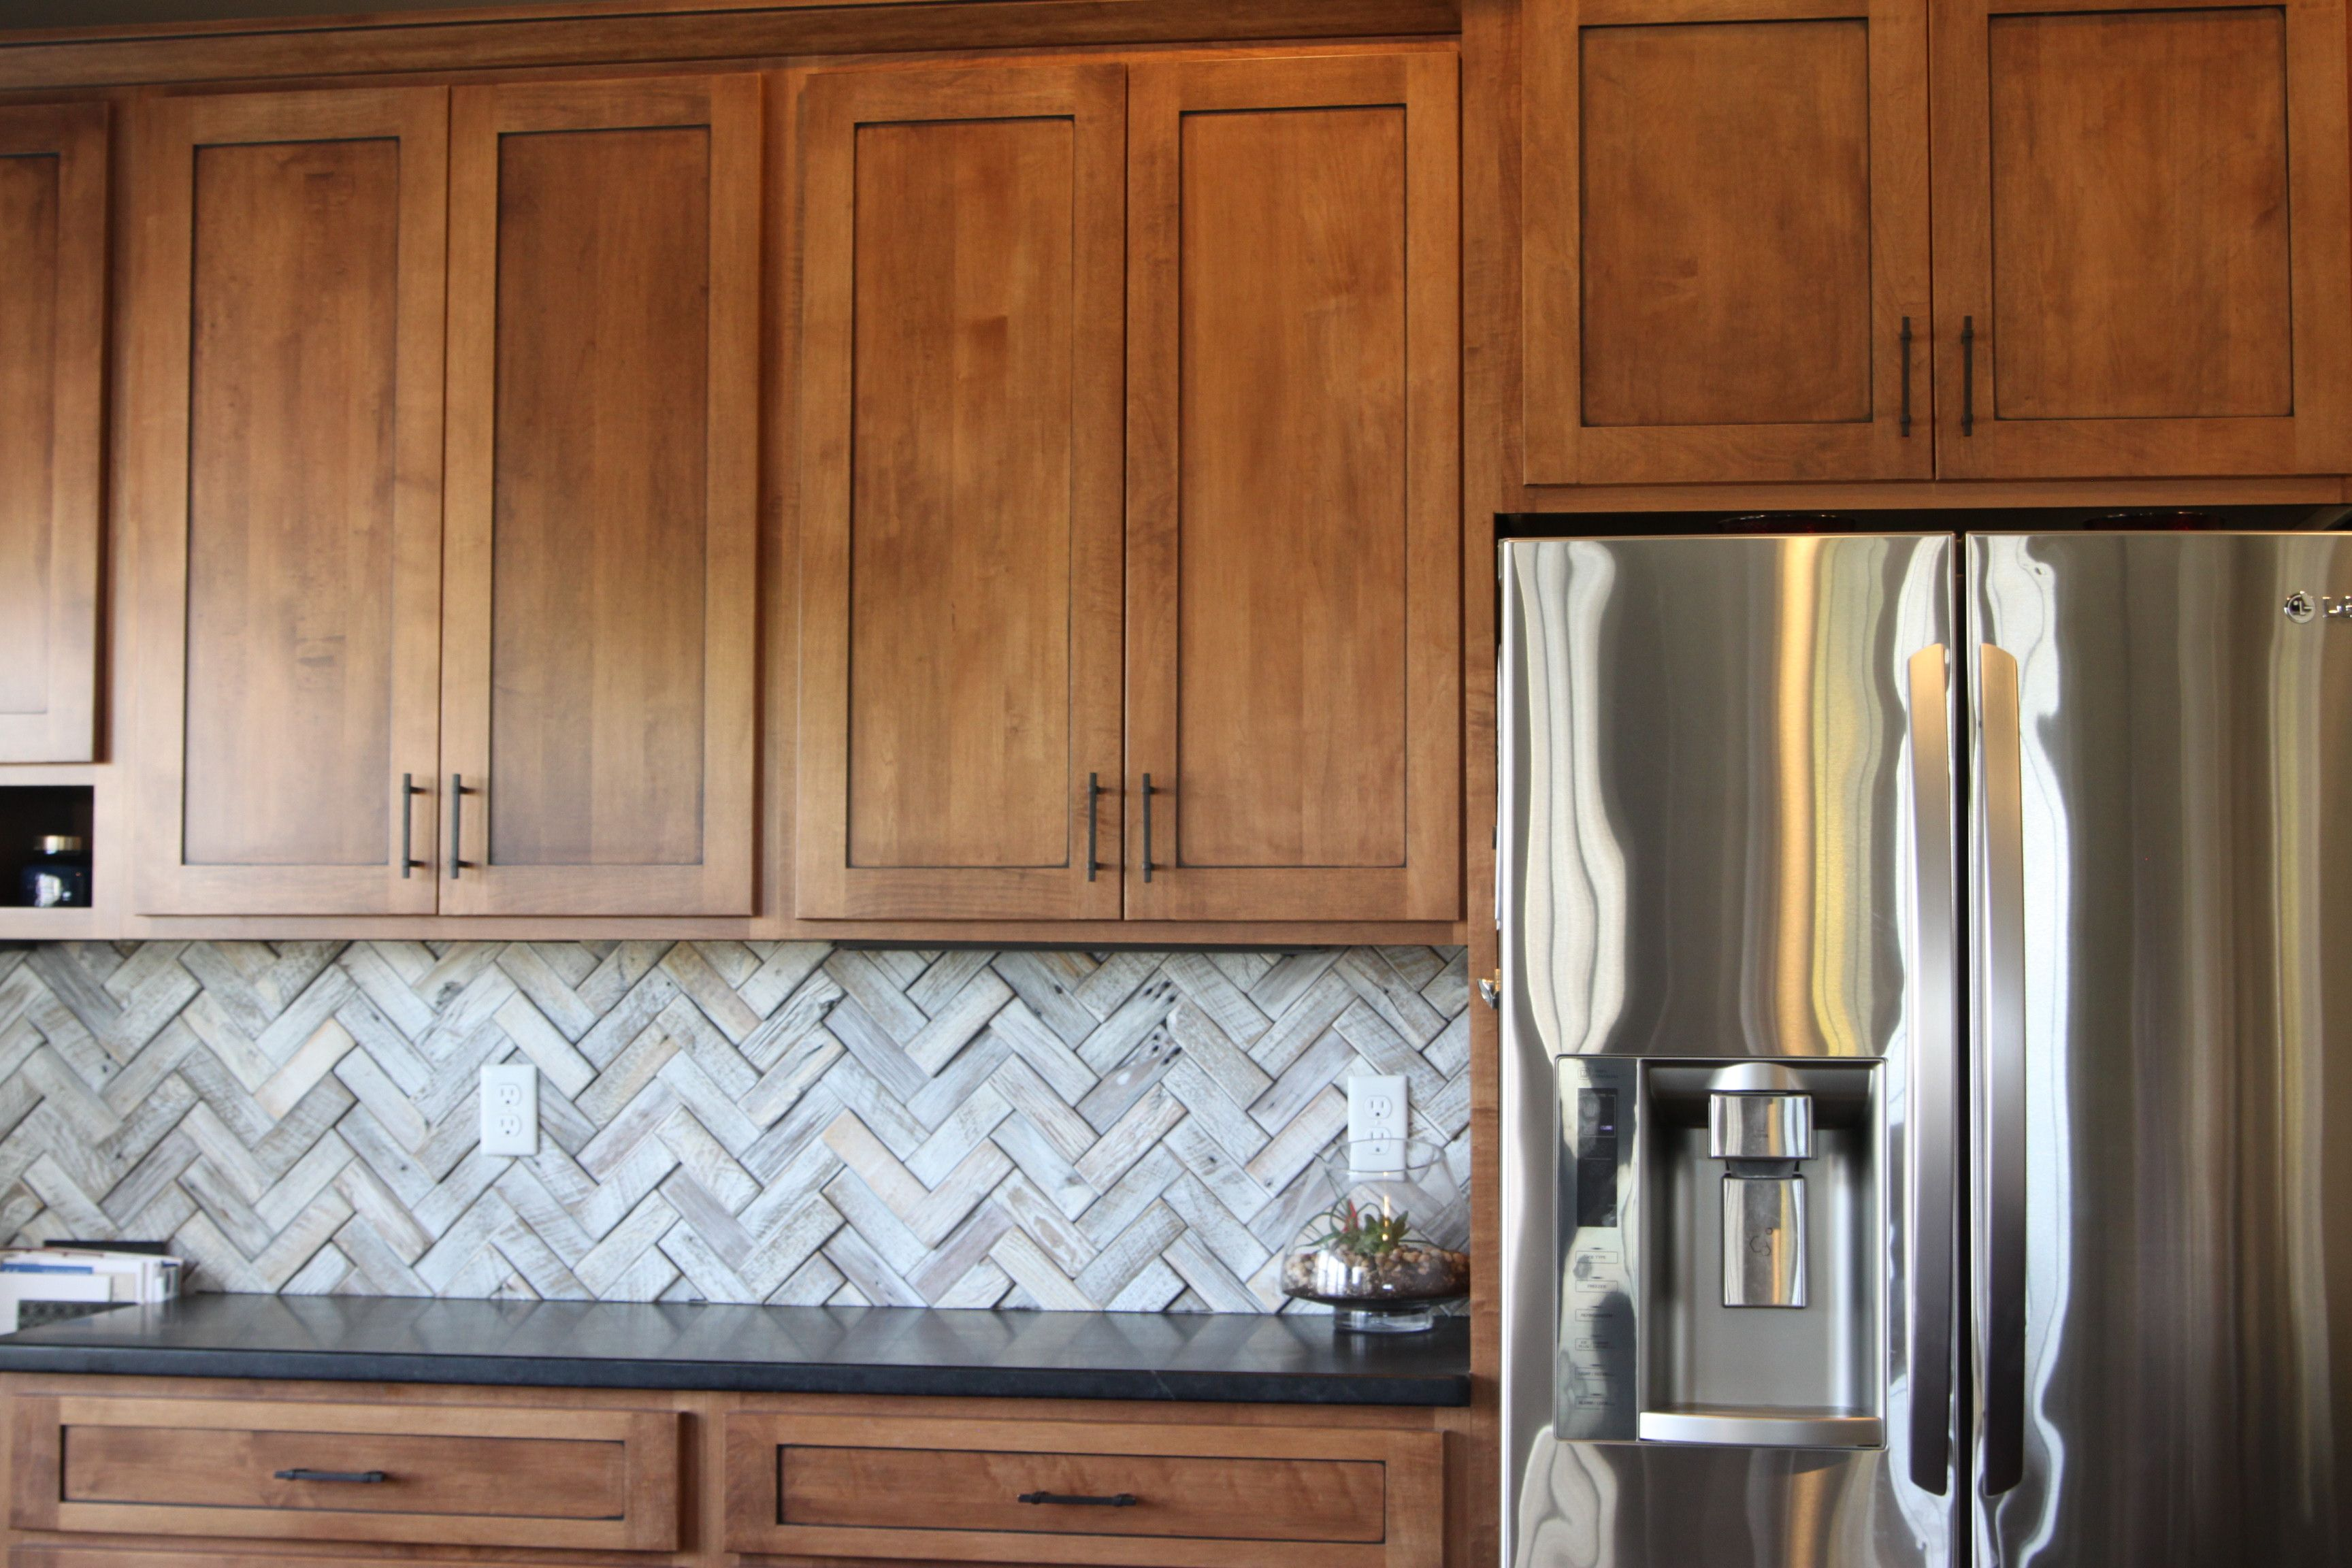 Herringbone Backsplash Herringbone Backsplash Wood Tile